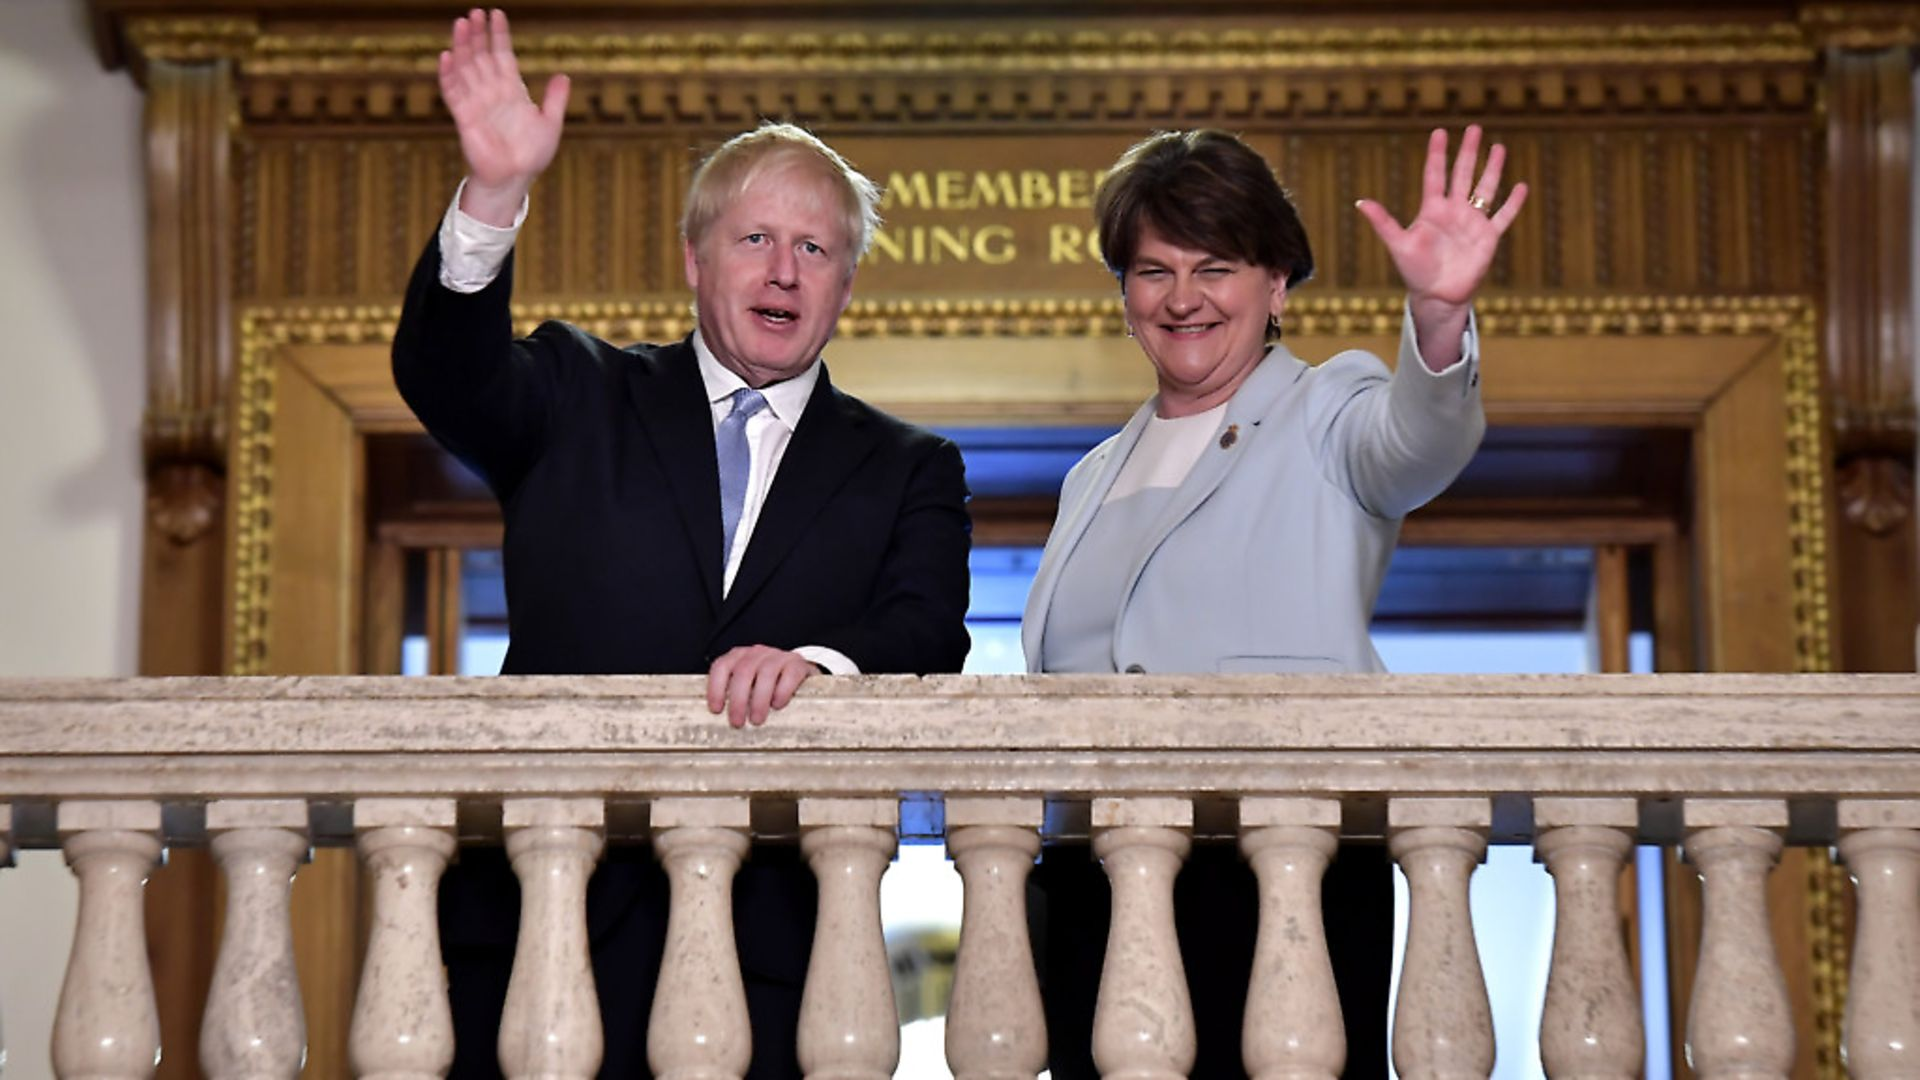 Boris Johnson meets with DUP leader Arlene Foster at Stormont (Photo by Charles McQuillan/Getty Images) - Credit: Getty Images